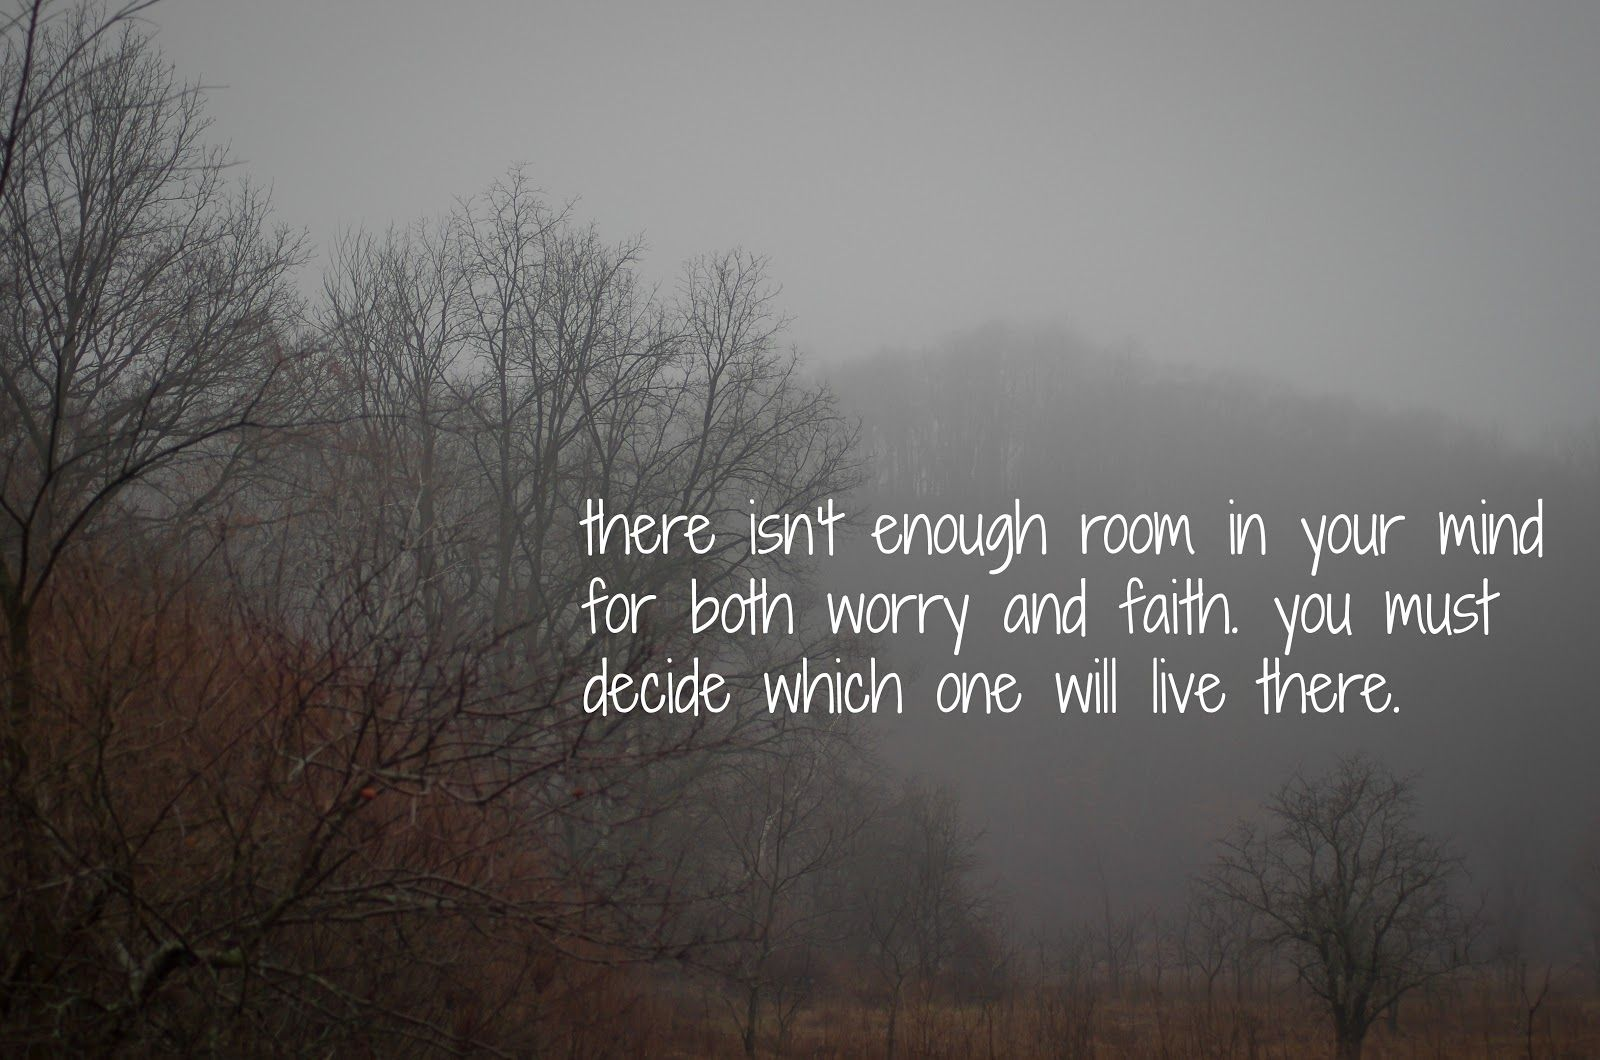 Tumblr Backgrounds Quotes Google Search: Wallpaper Quote Pc Tumblr - Google Search